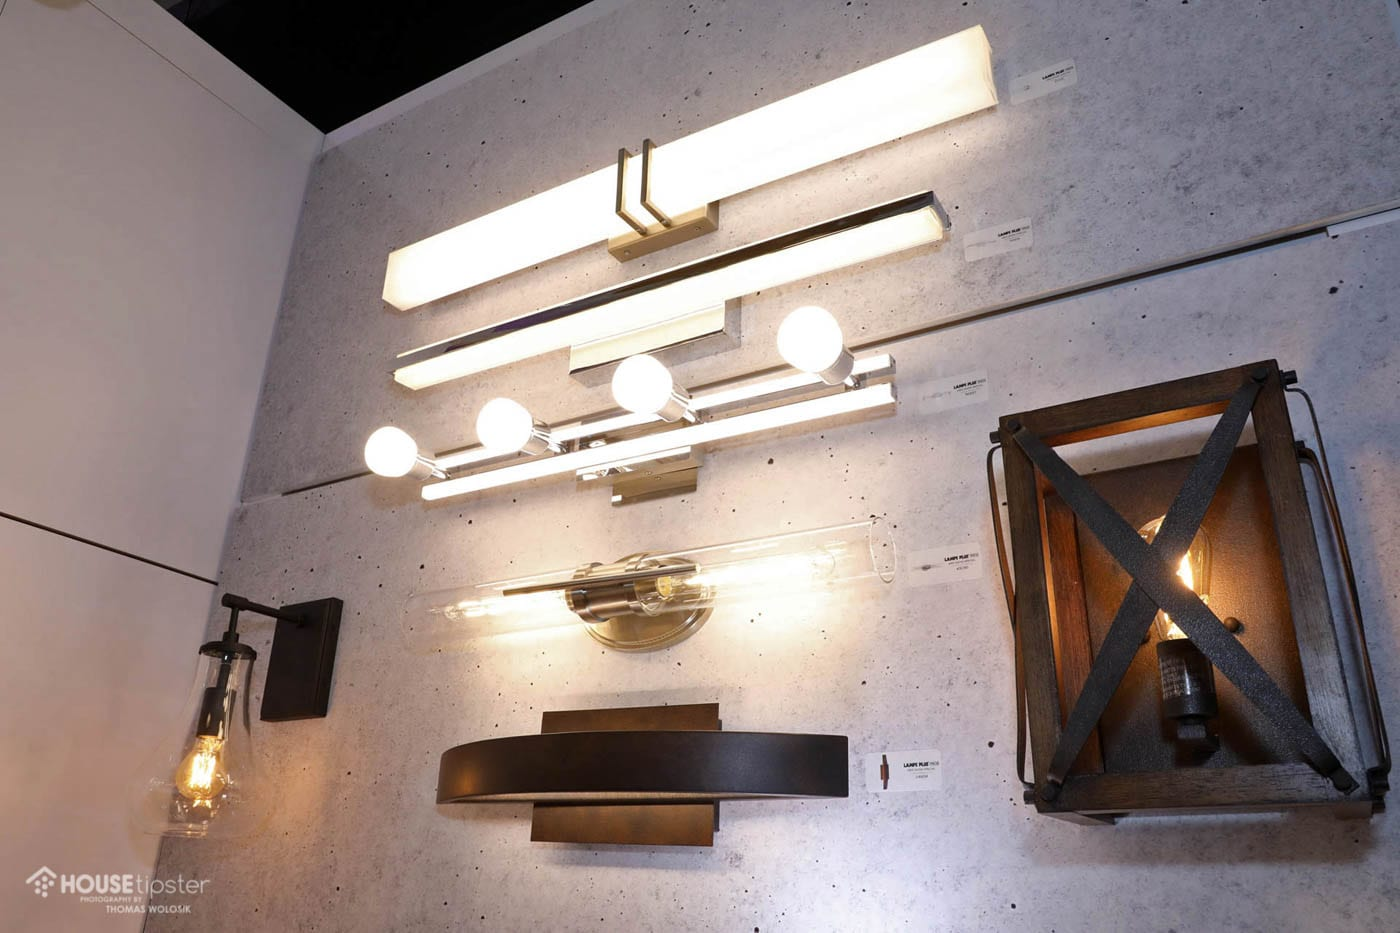 Lamps plus pros brings exclusive designs to kbis ibs house